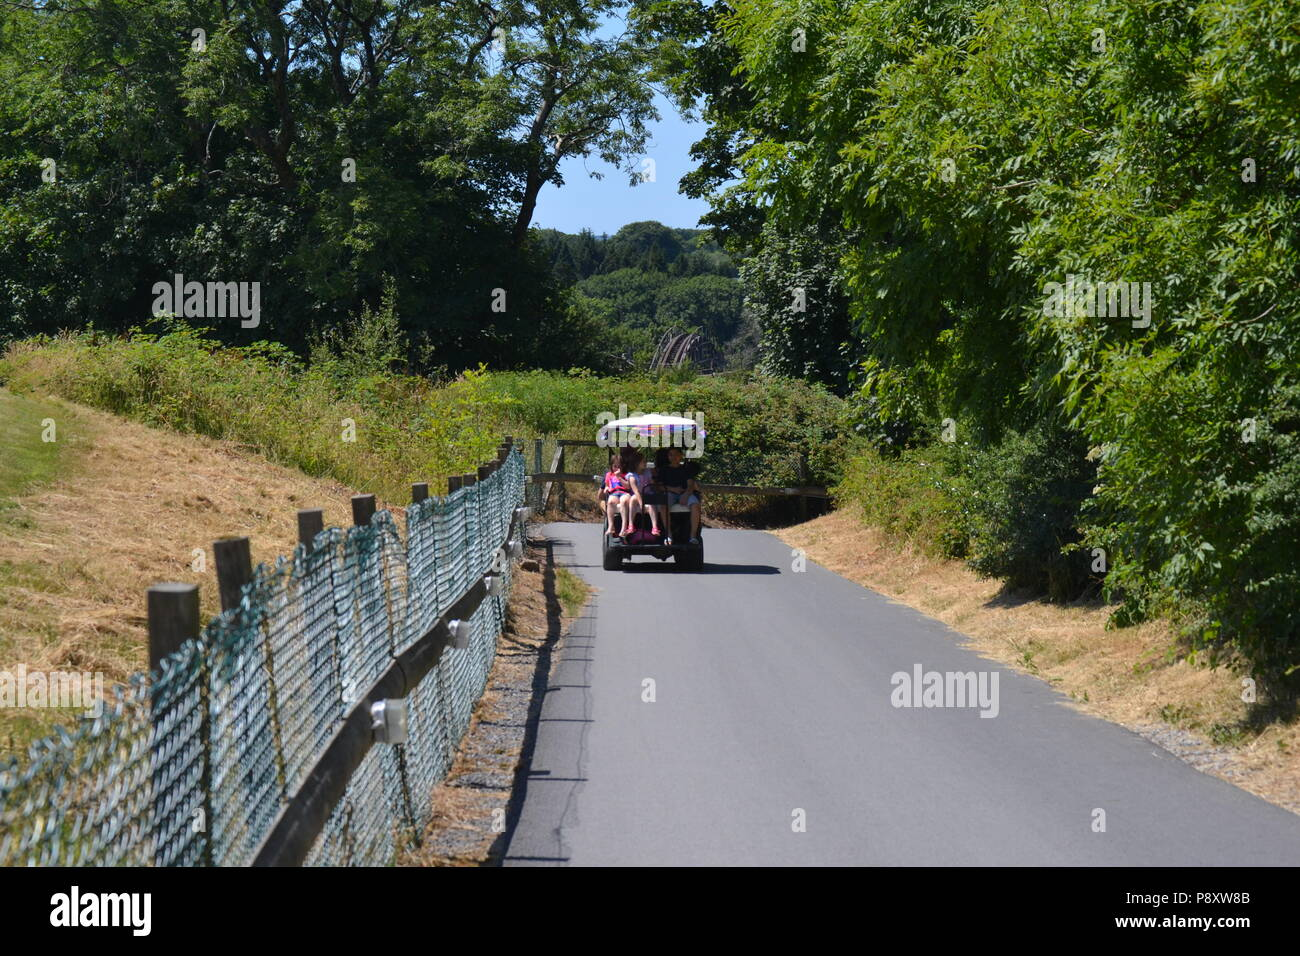 golf buggy ride - Stock Image